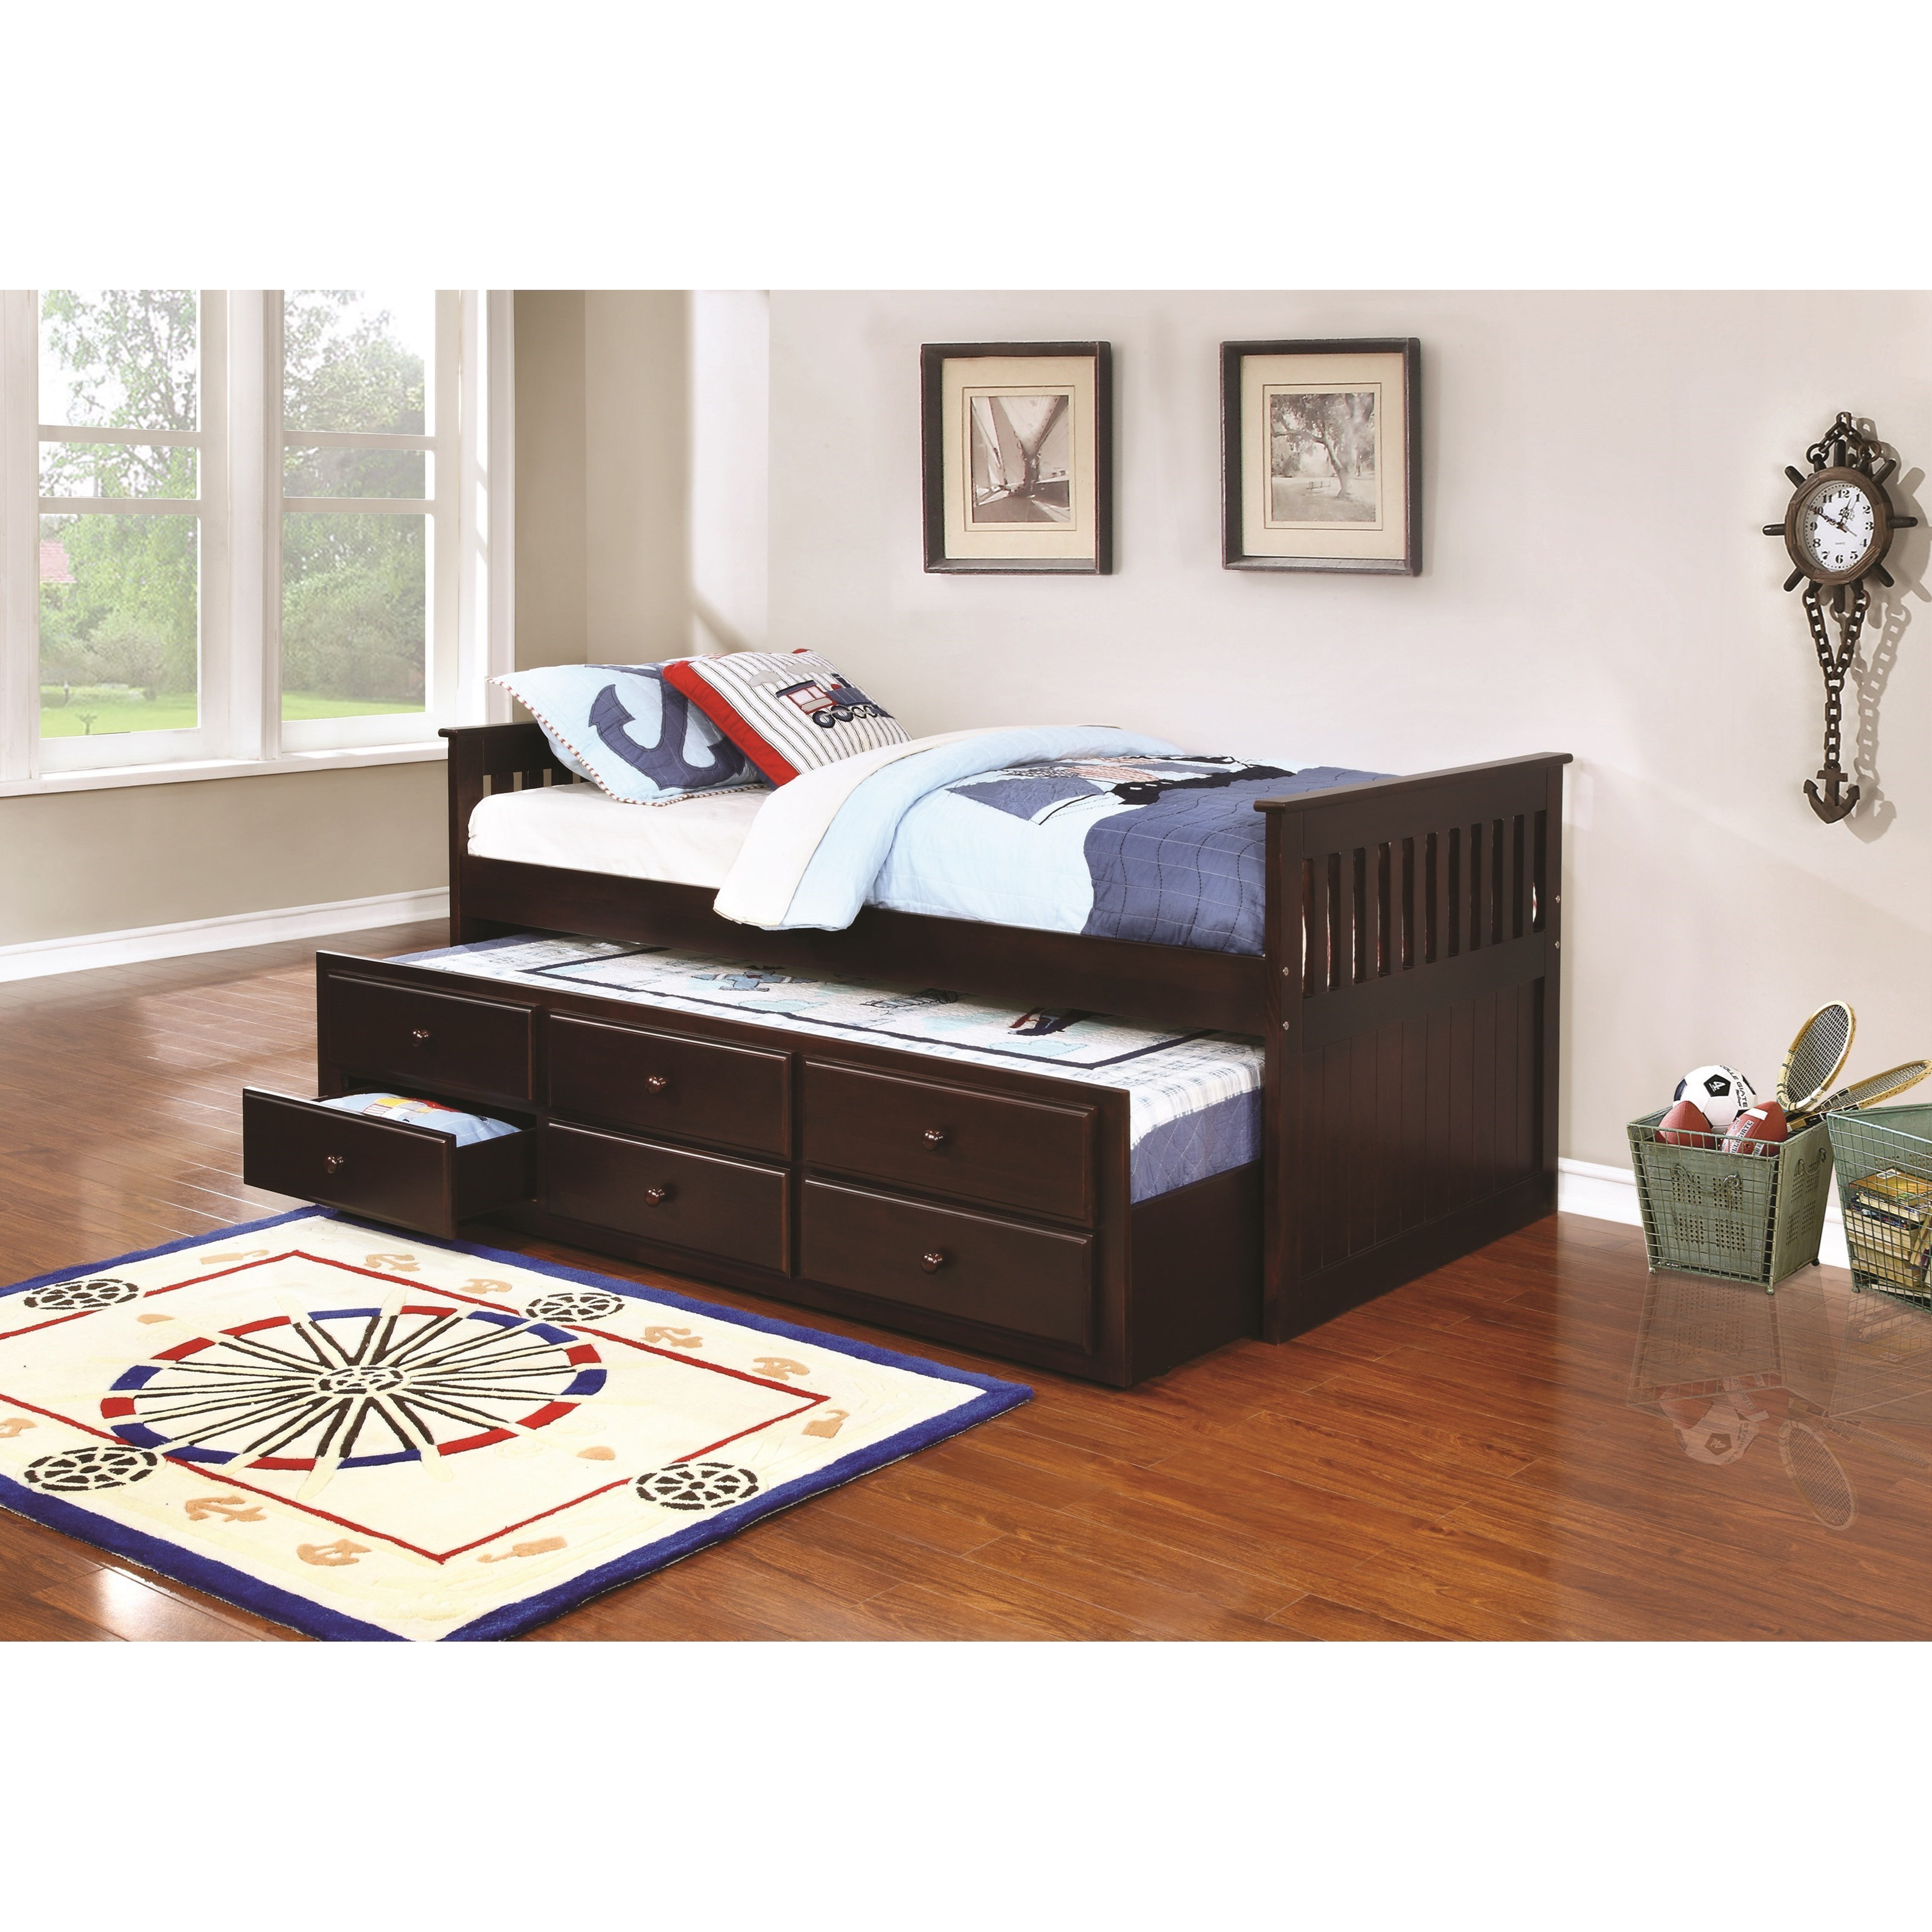 Coaster La Salle 300100 Twin Captainu0027s Bed With Trundle And Storage Drawers